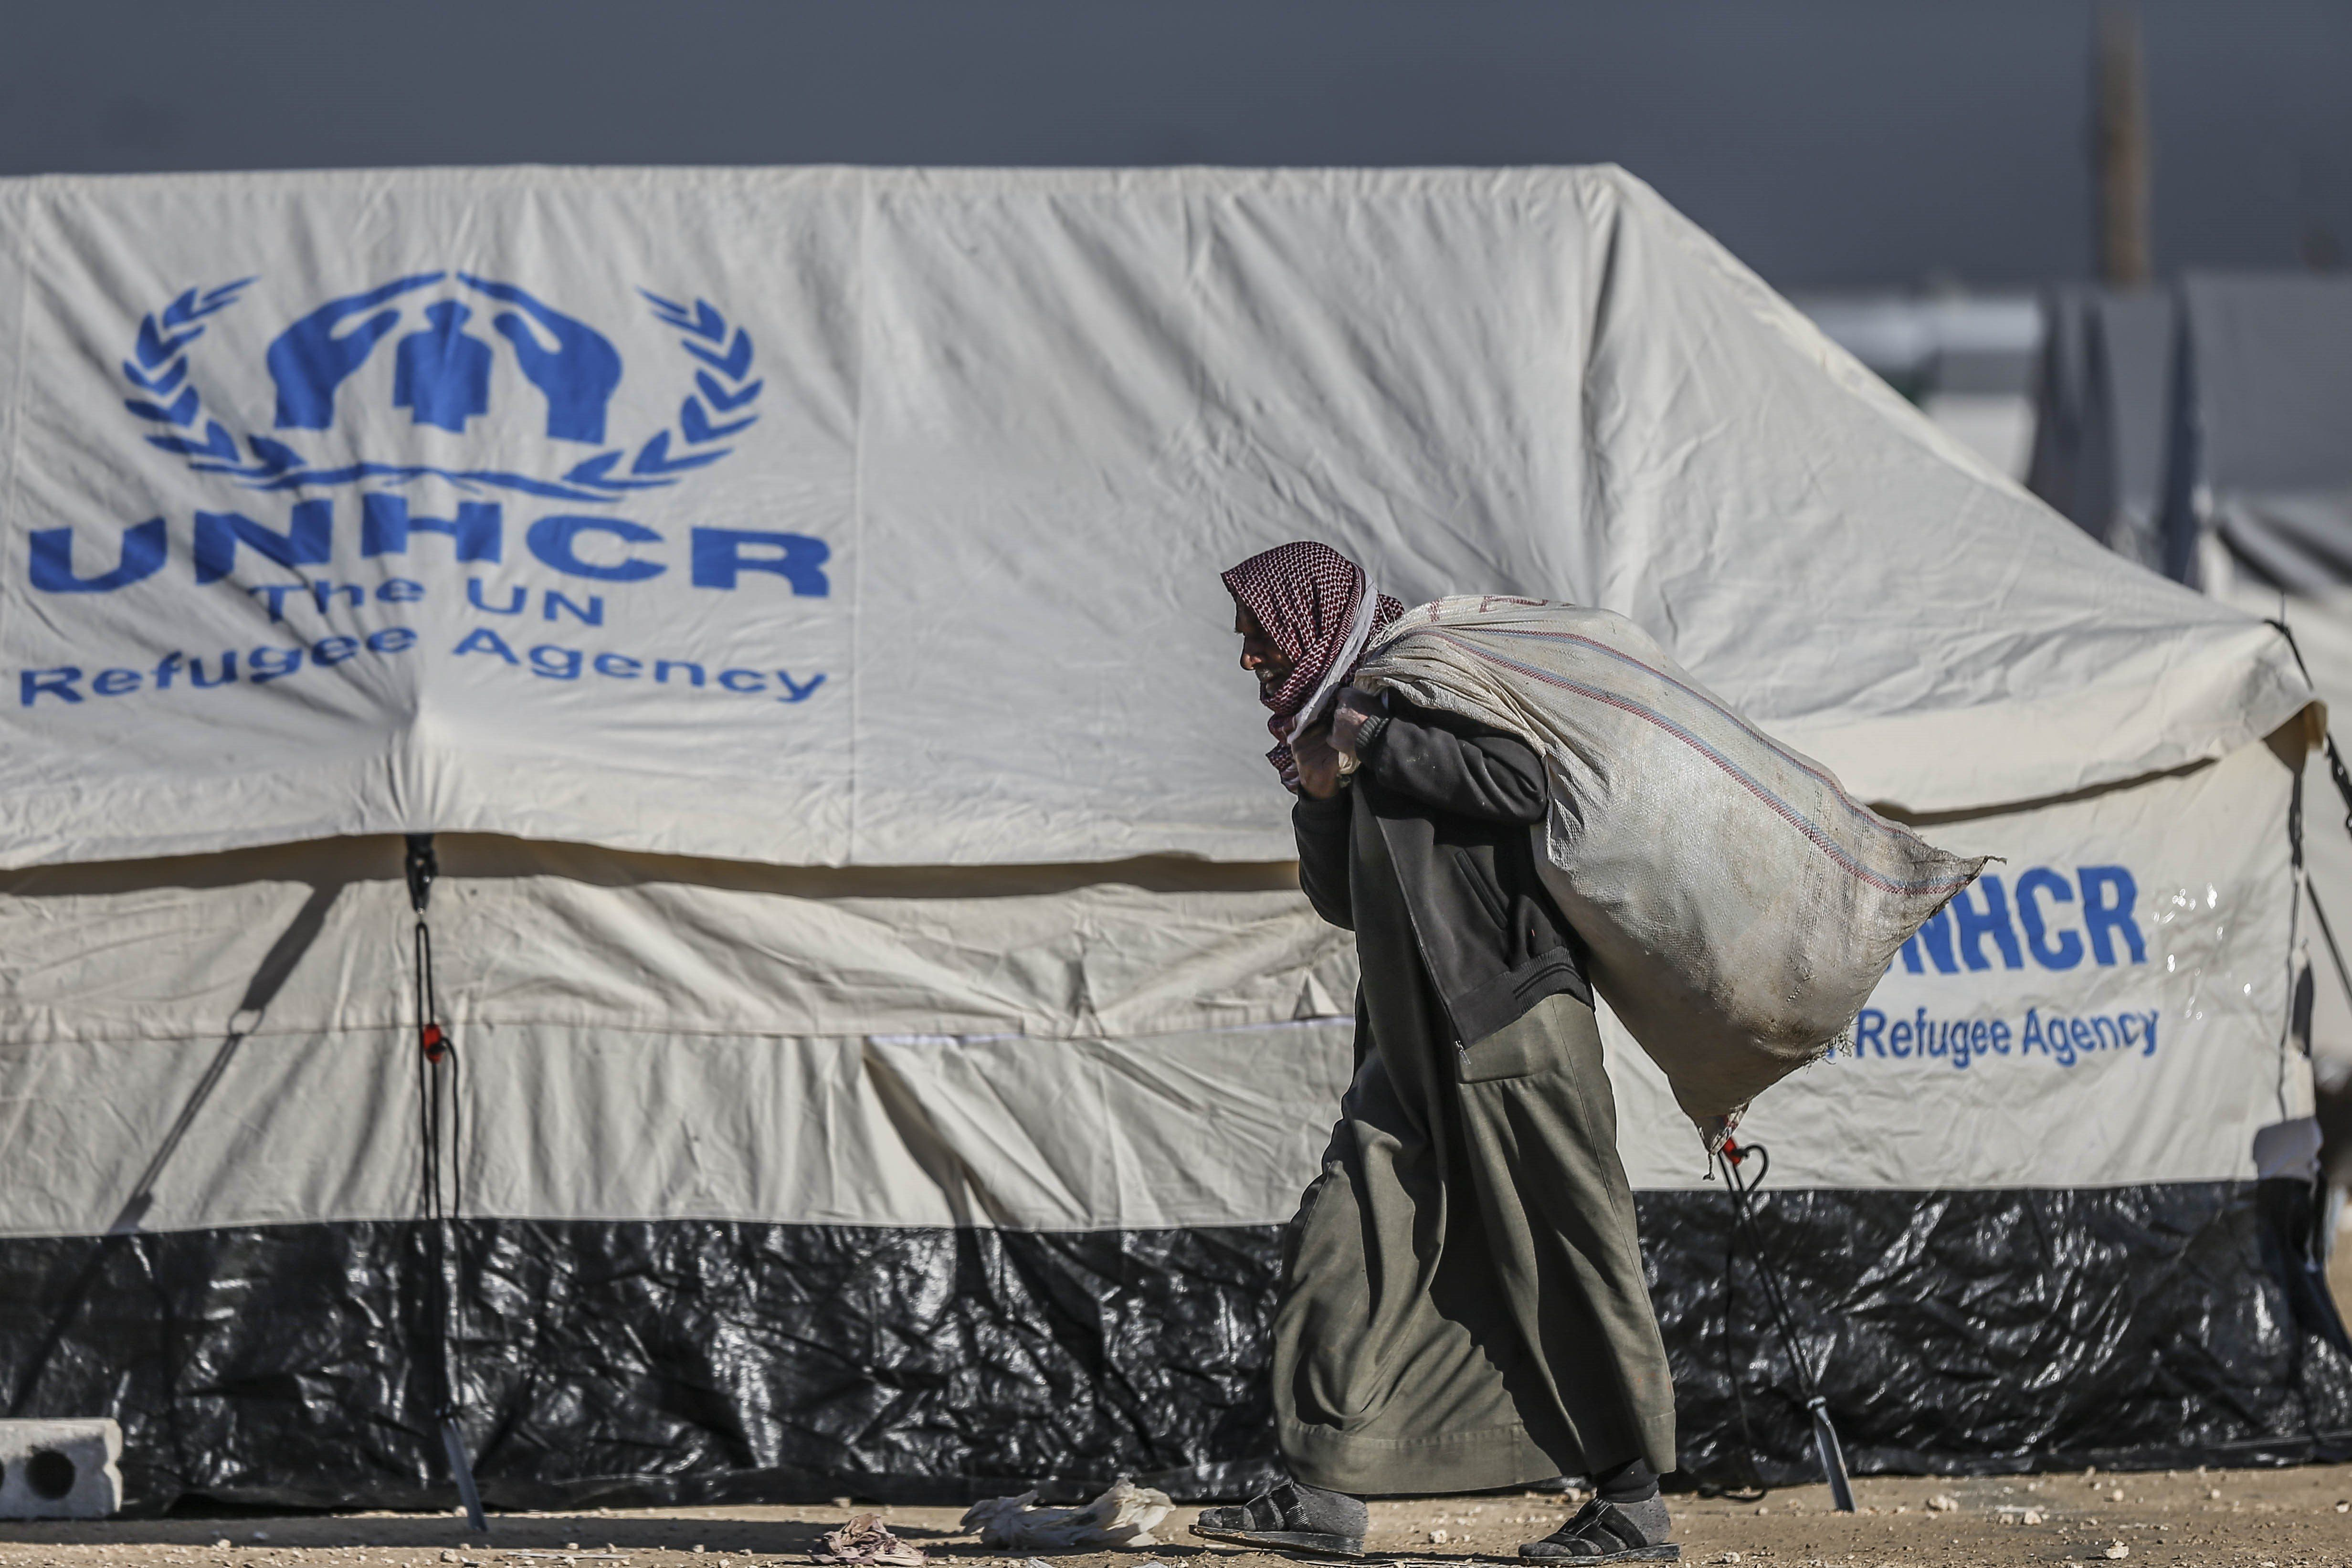 ALEPPO, SYRIA - FEBRUARY 10: Syrians who flee the attacks of Syrian and Russian air forces, shelter at tents and try to live their lives with humanitarian aid send by Turkey, UNHCR and other Turkish Humanitarian aid organizations, close to the Bab al-Salameh border crossing on Turkish-Syrian border near Azaz town of Aleppo, Syria on February 10, 2016. (Photo by Fatih Aktas/Anadolu Agency/Getty Images)